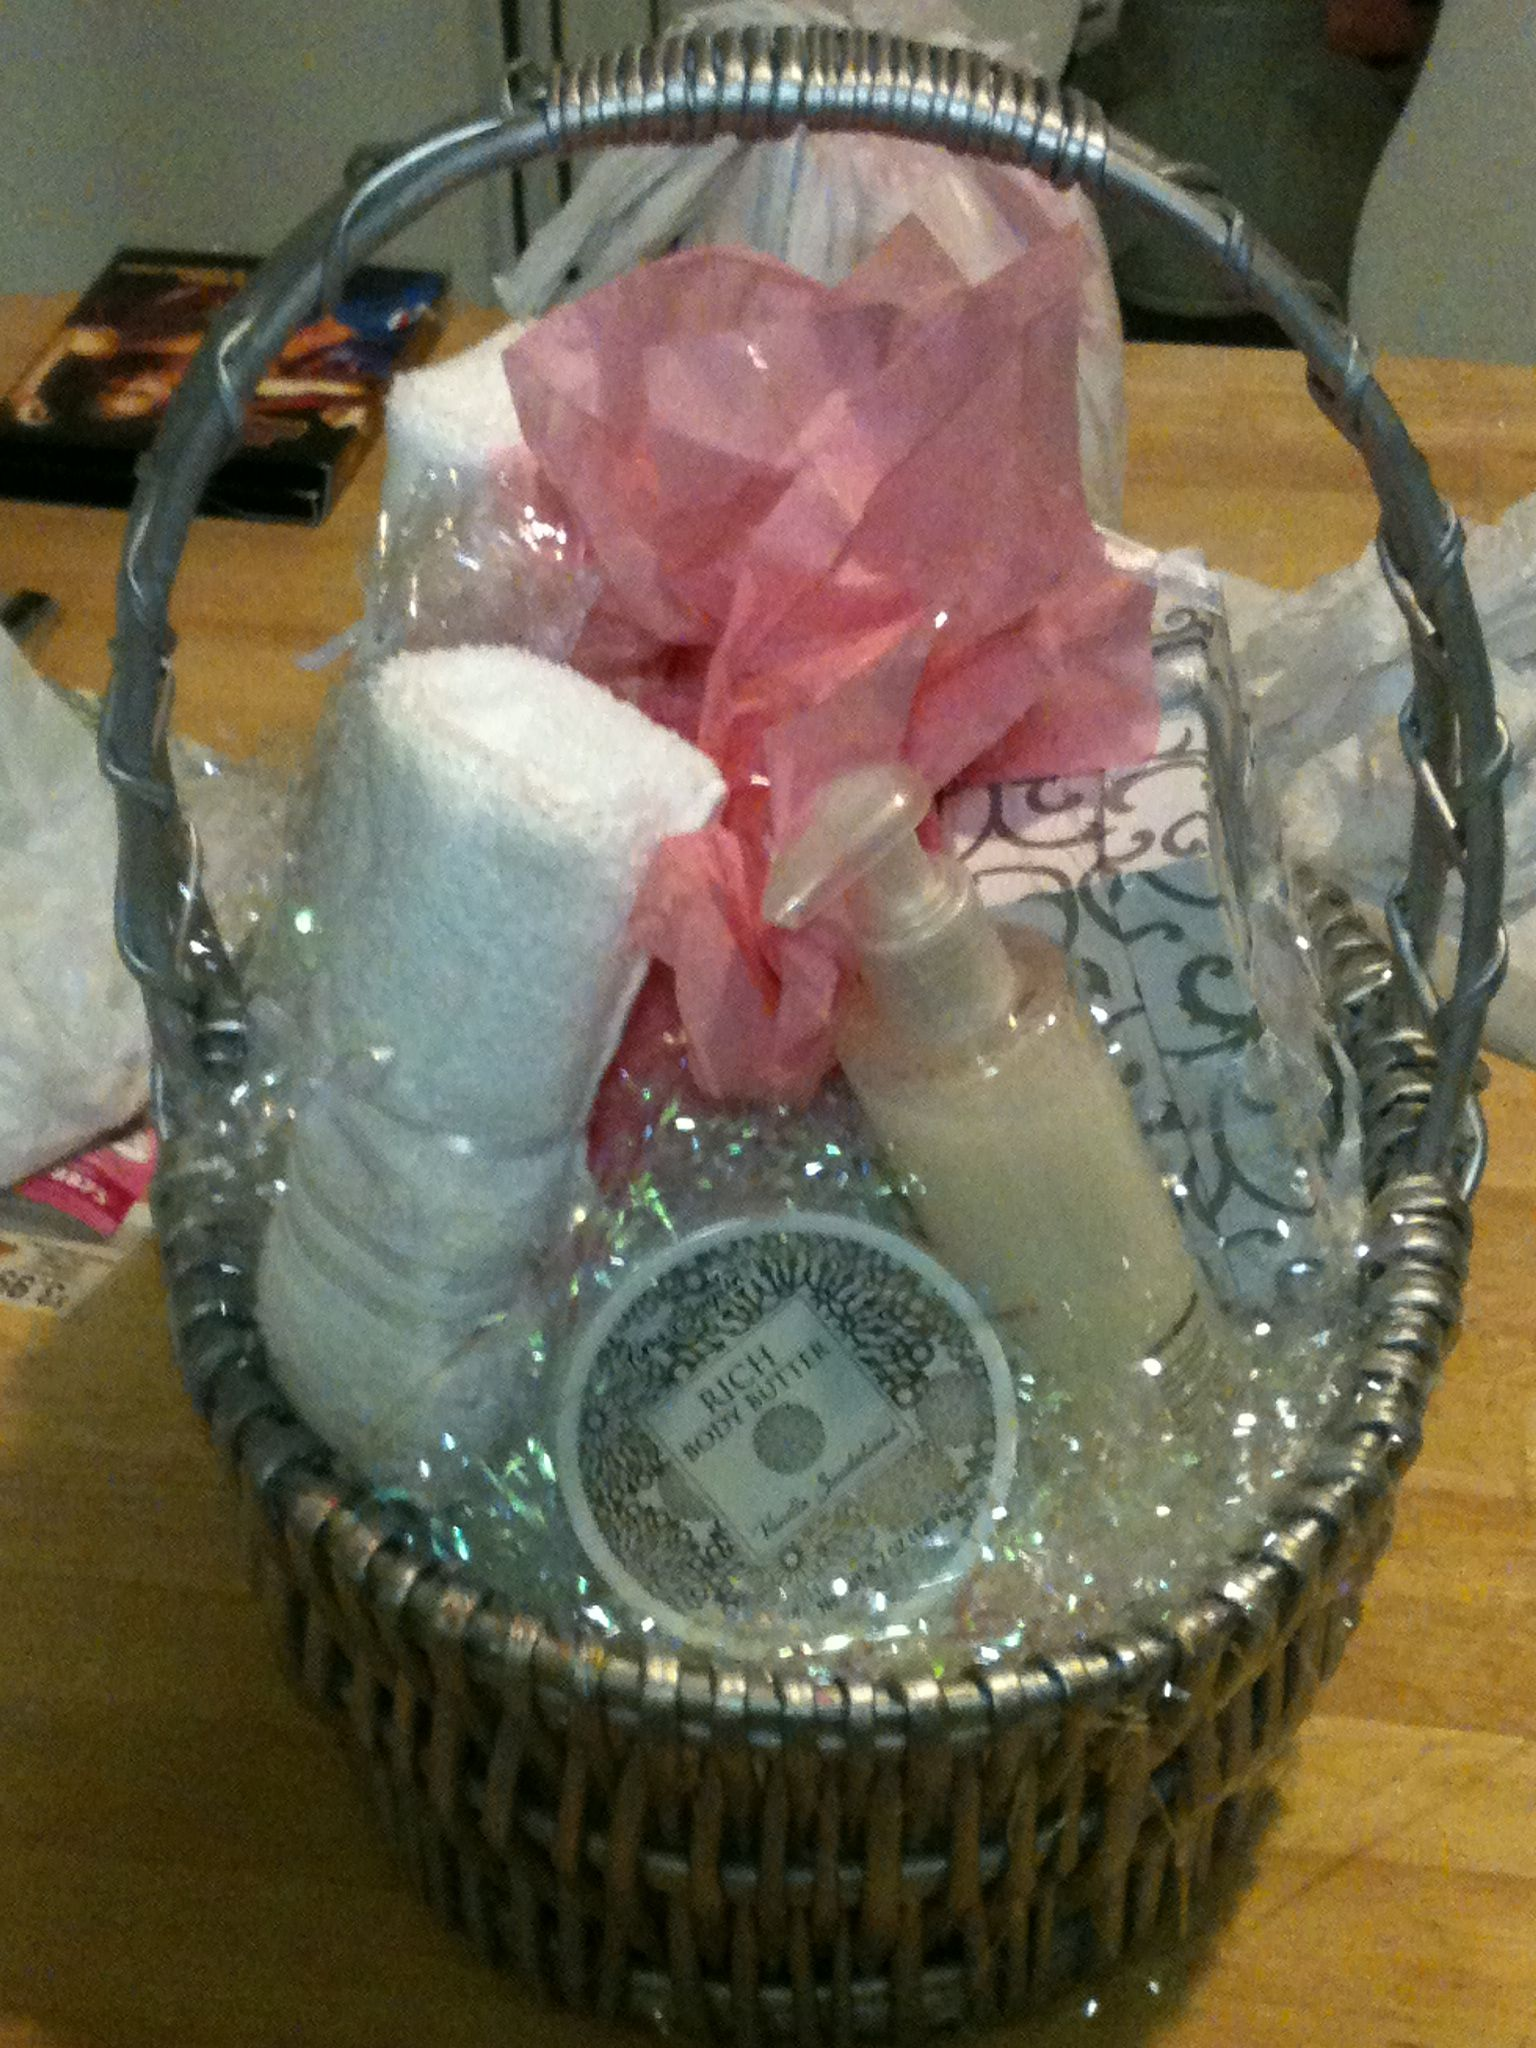 Gift Basket in the making. I can personalize your special gift basket for any occasions. This is the Satin Hands set I made for a Mary Kay party; we held a raffle draw at the end of the party.